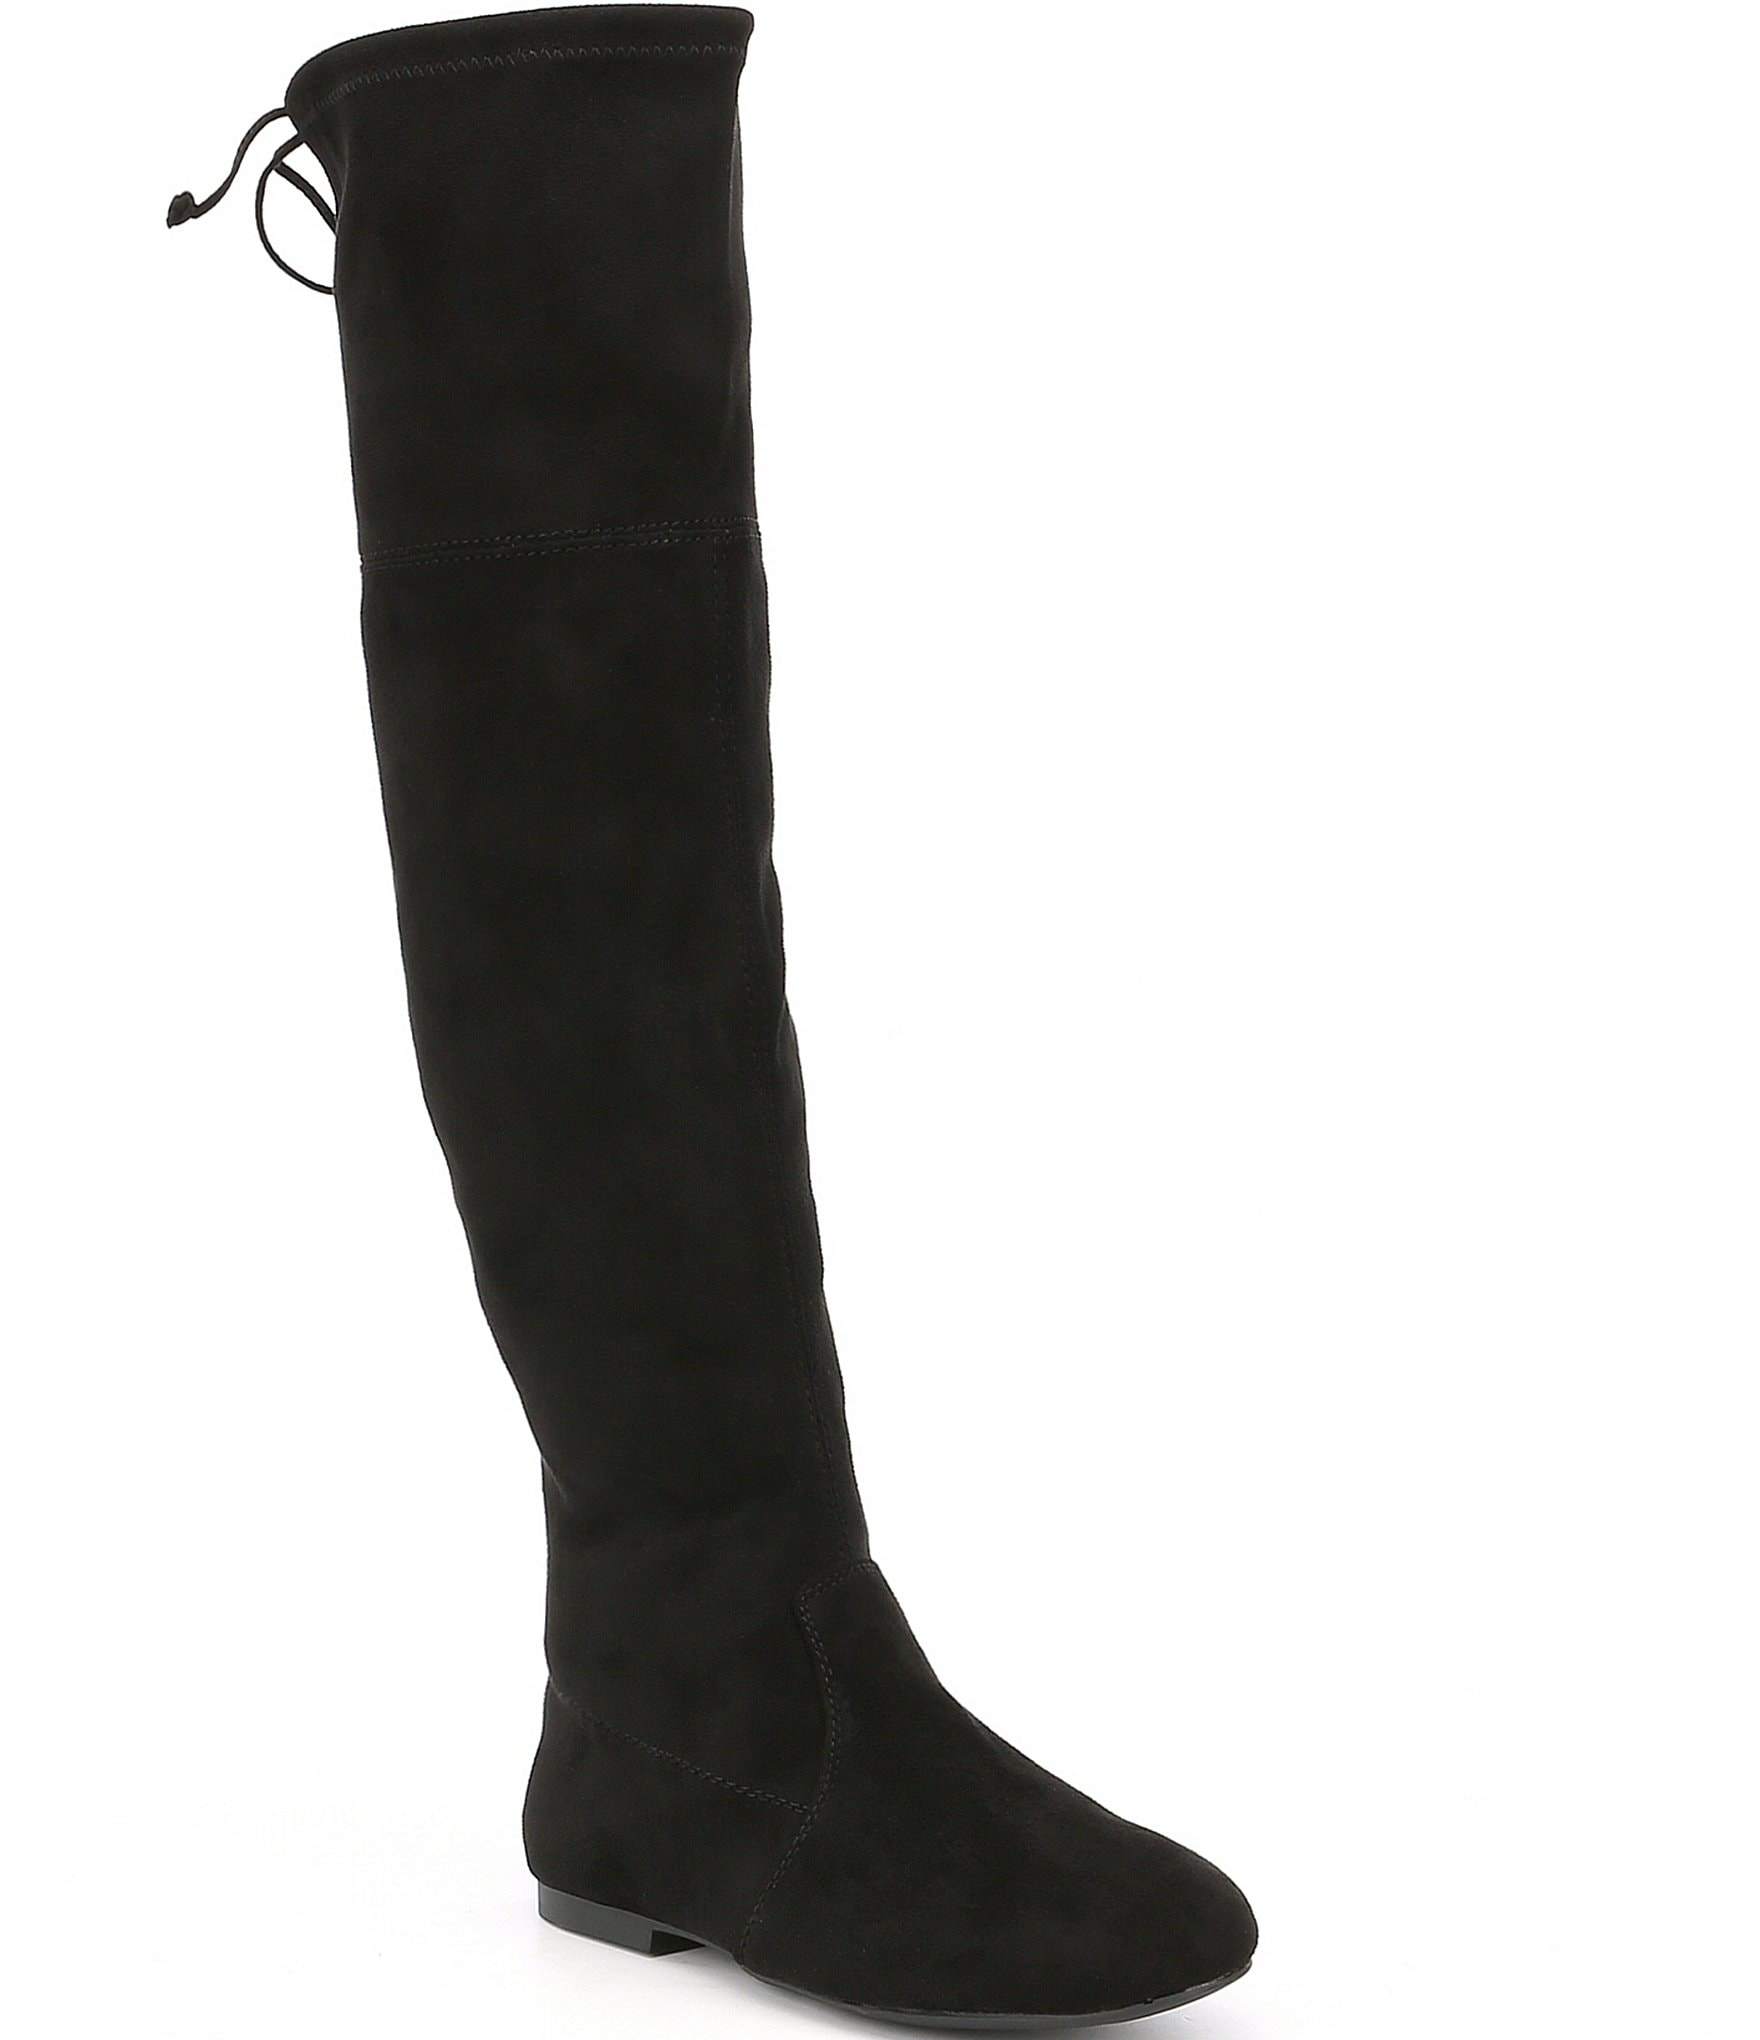 2ff345306174 GB Youth Girls' Flat Tall Boots | Dillard's